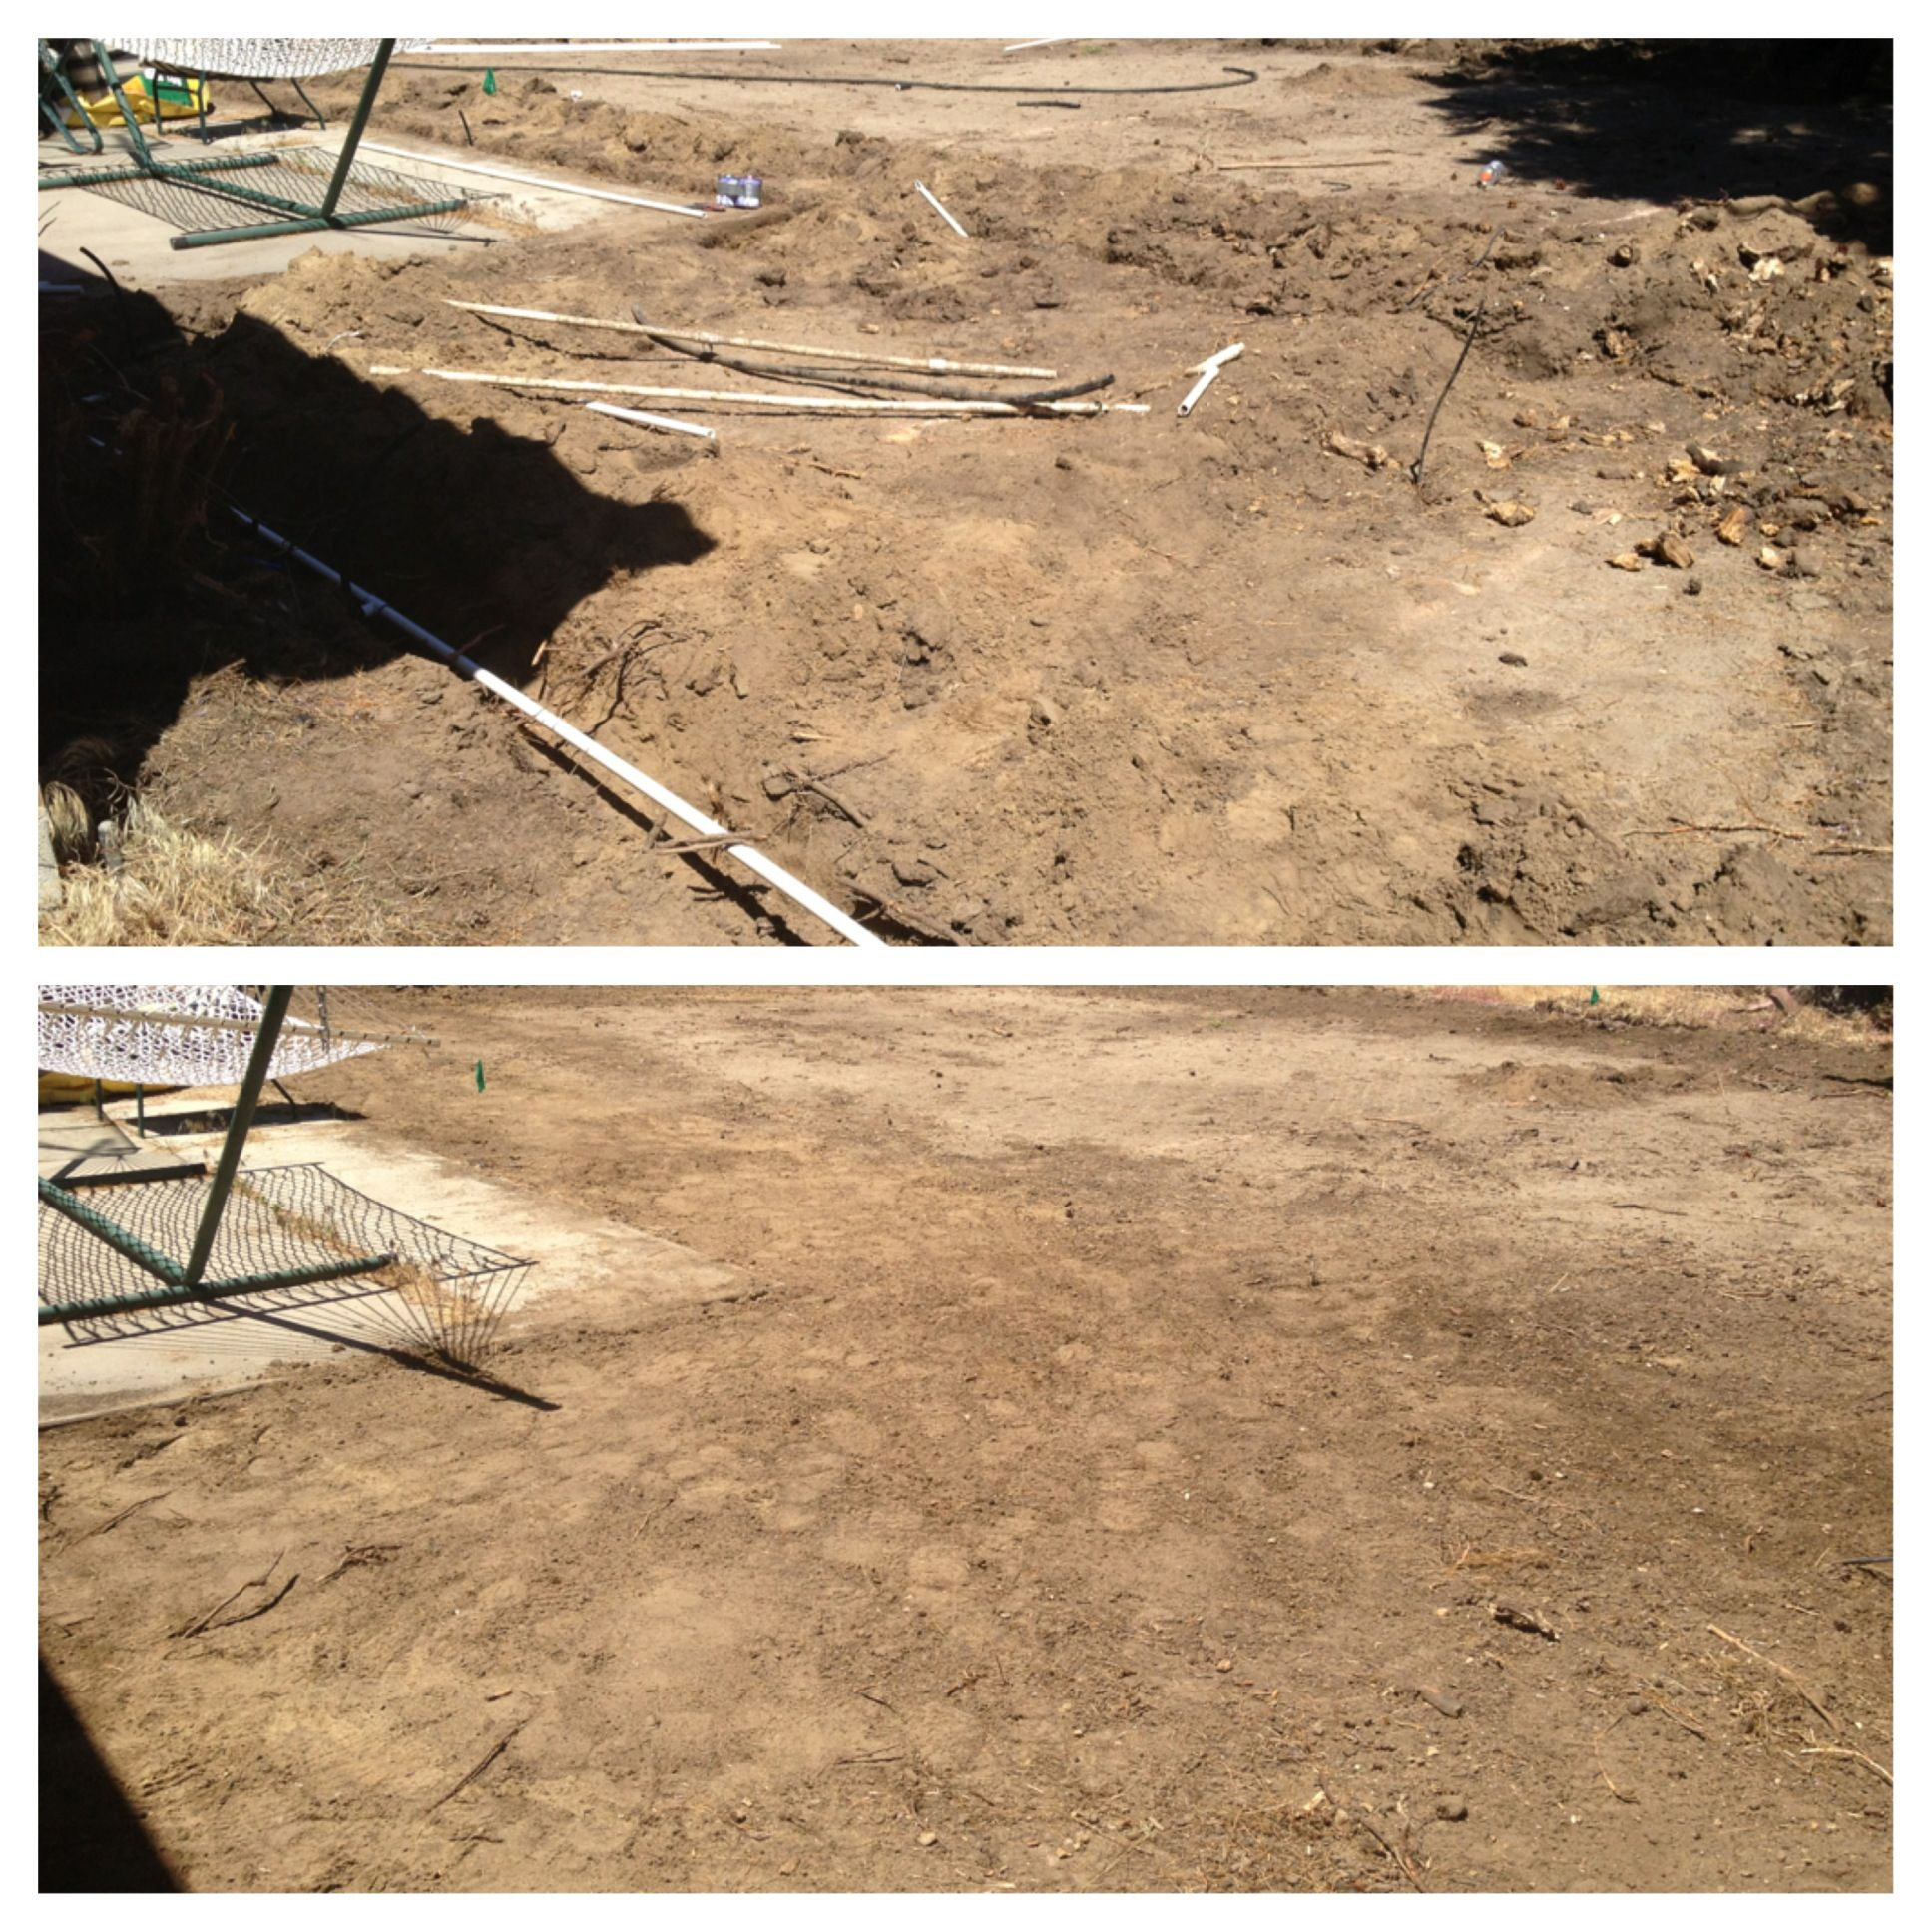 New sprinkler system for this Sandy Utah home. It is ready for new sod and planting.